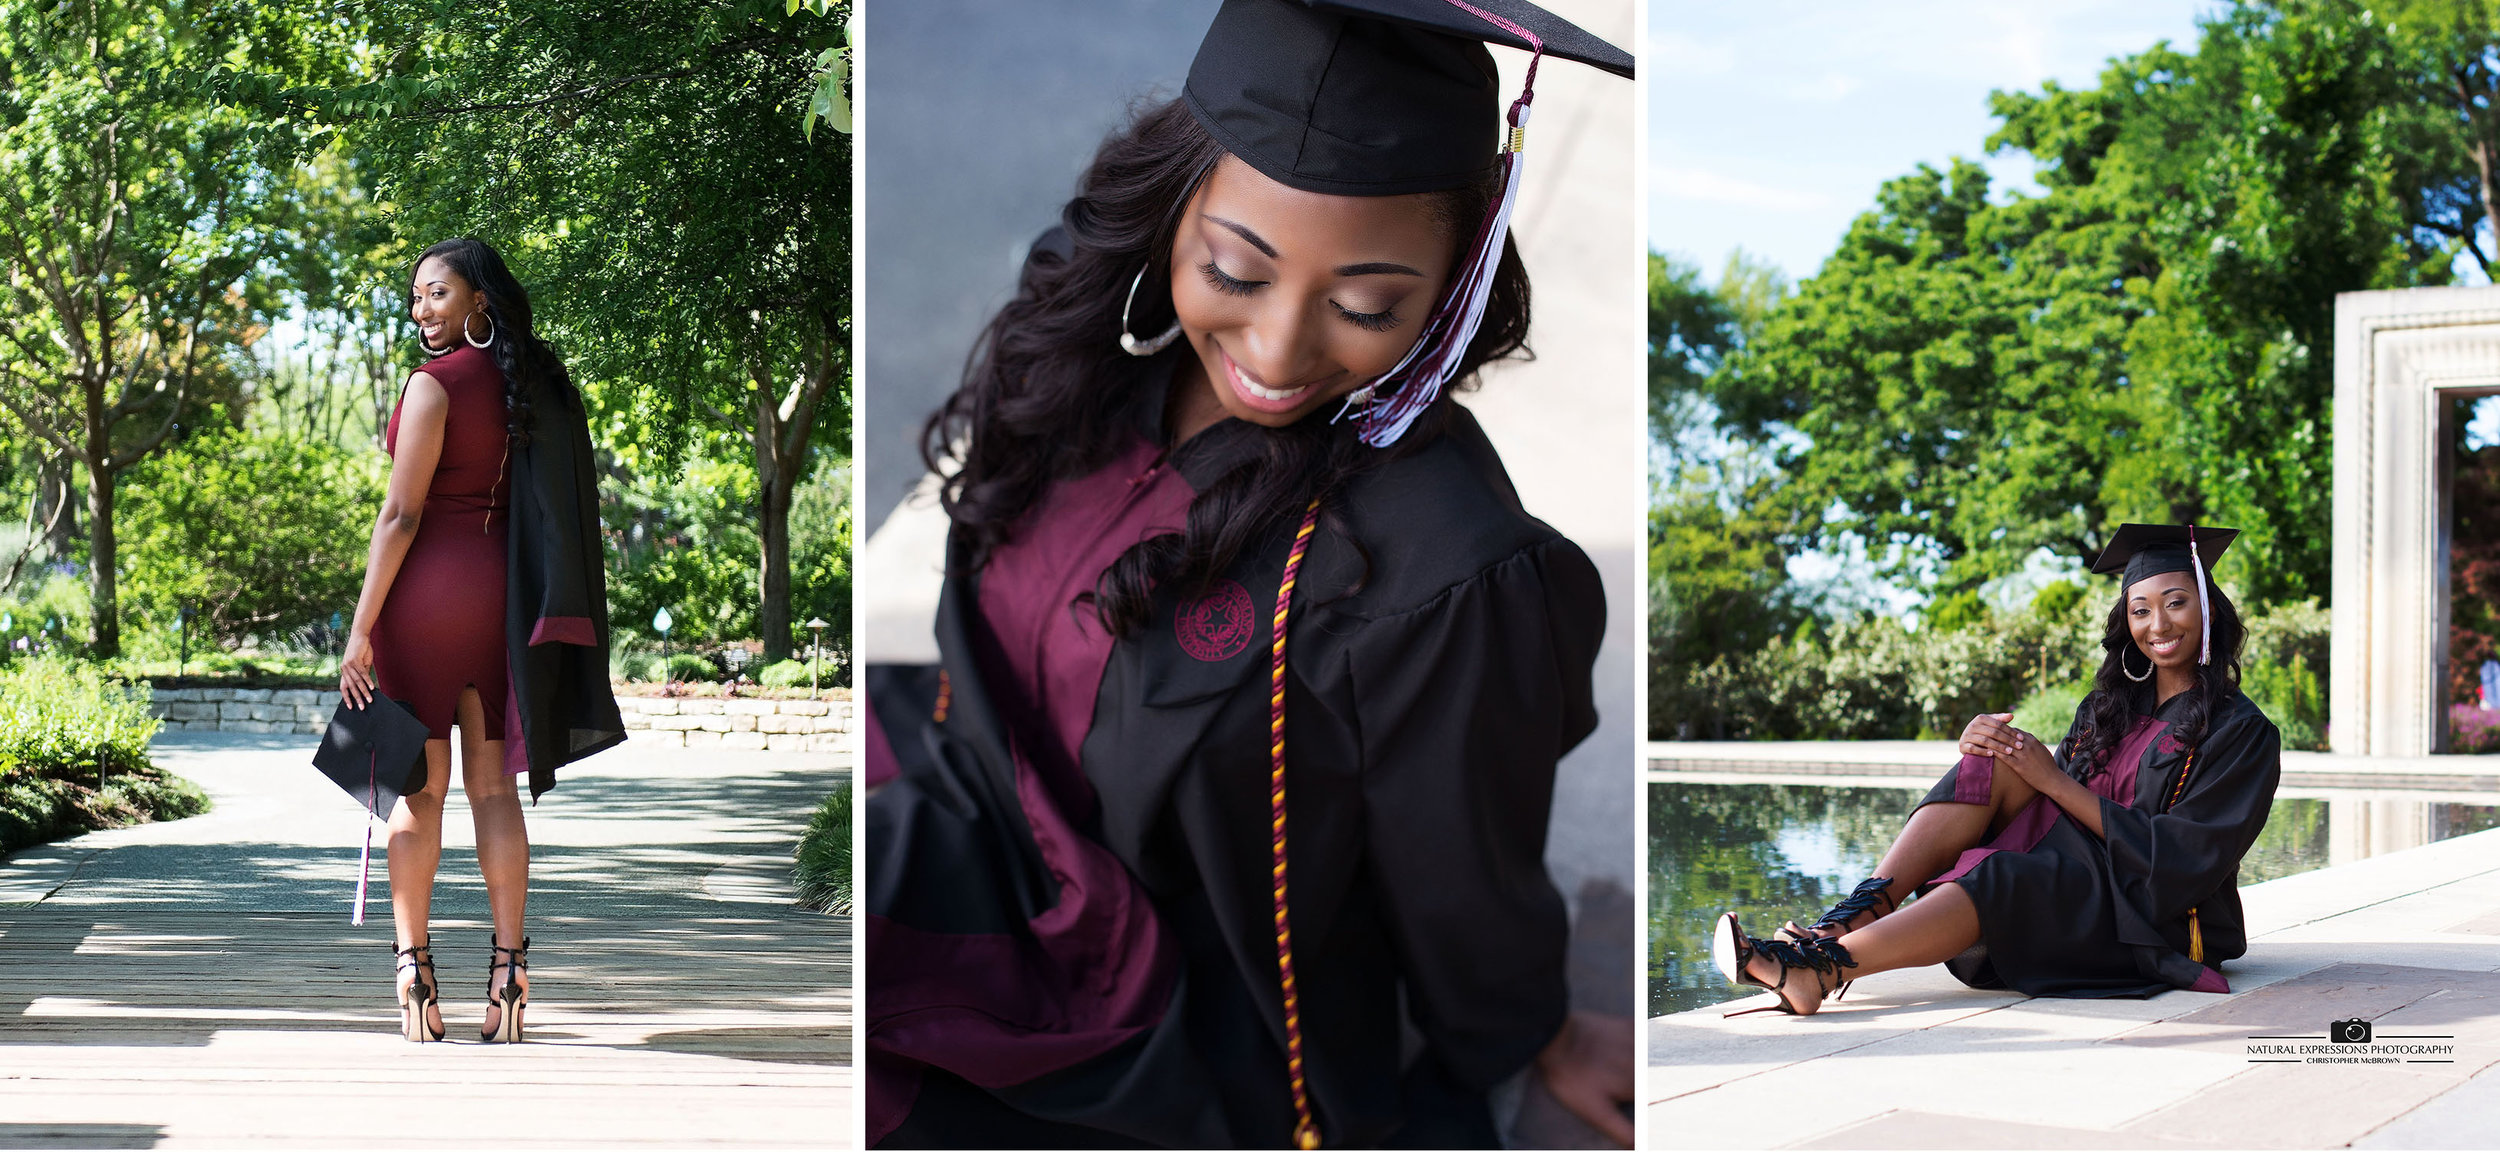 college_graduate_portraits_dallas_fortworth_photography.jpg